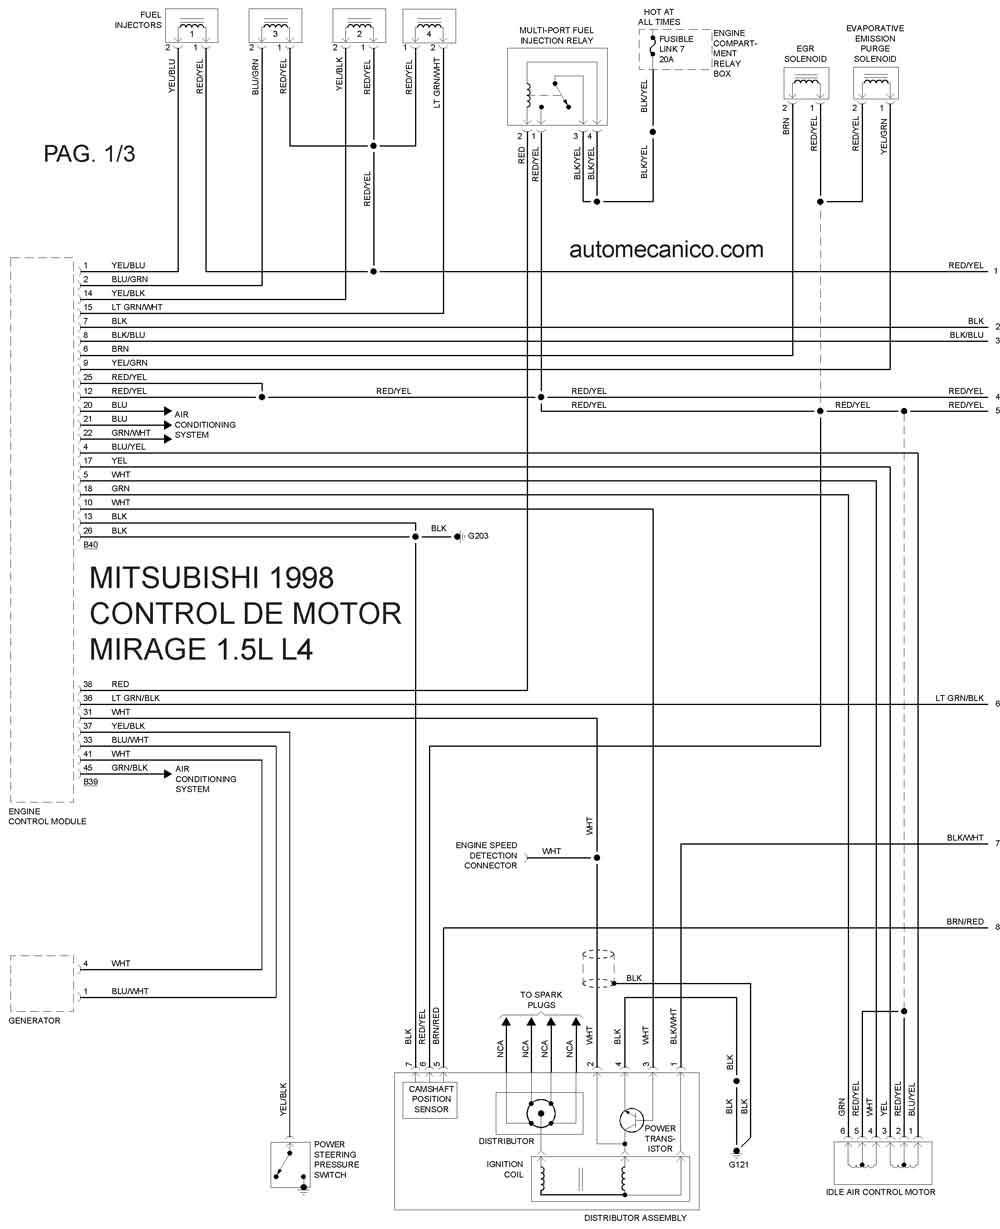 1995 Mitsubishi Mirage Ls Engine Diagram Question About Wiring 1999 Library Rh 88 Skriptoase De